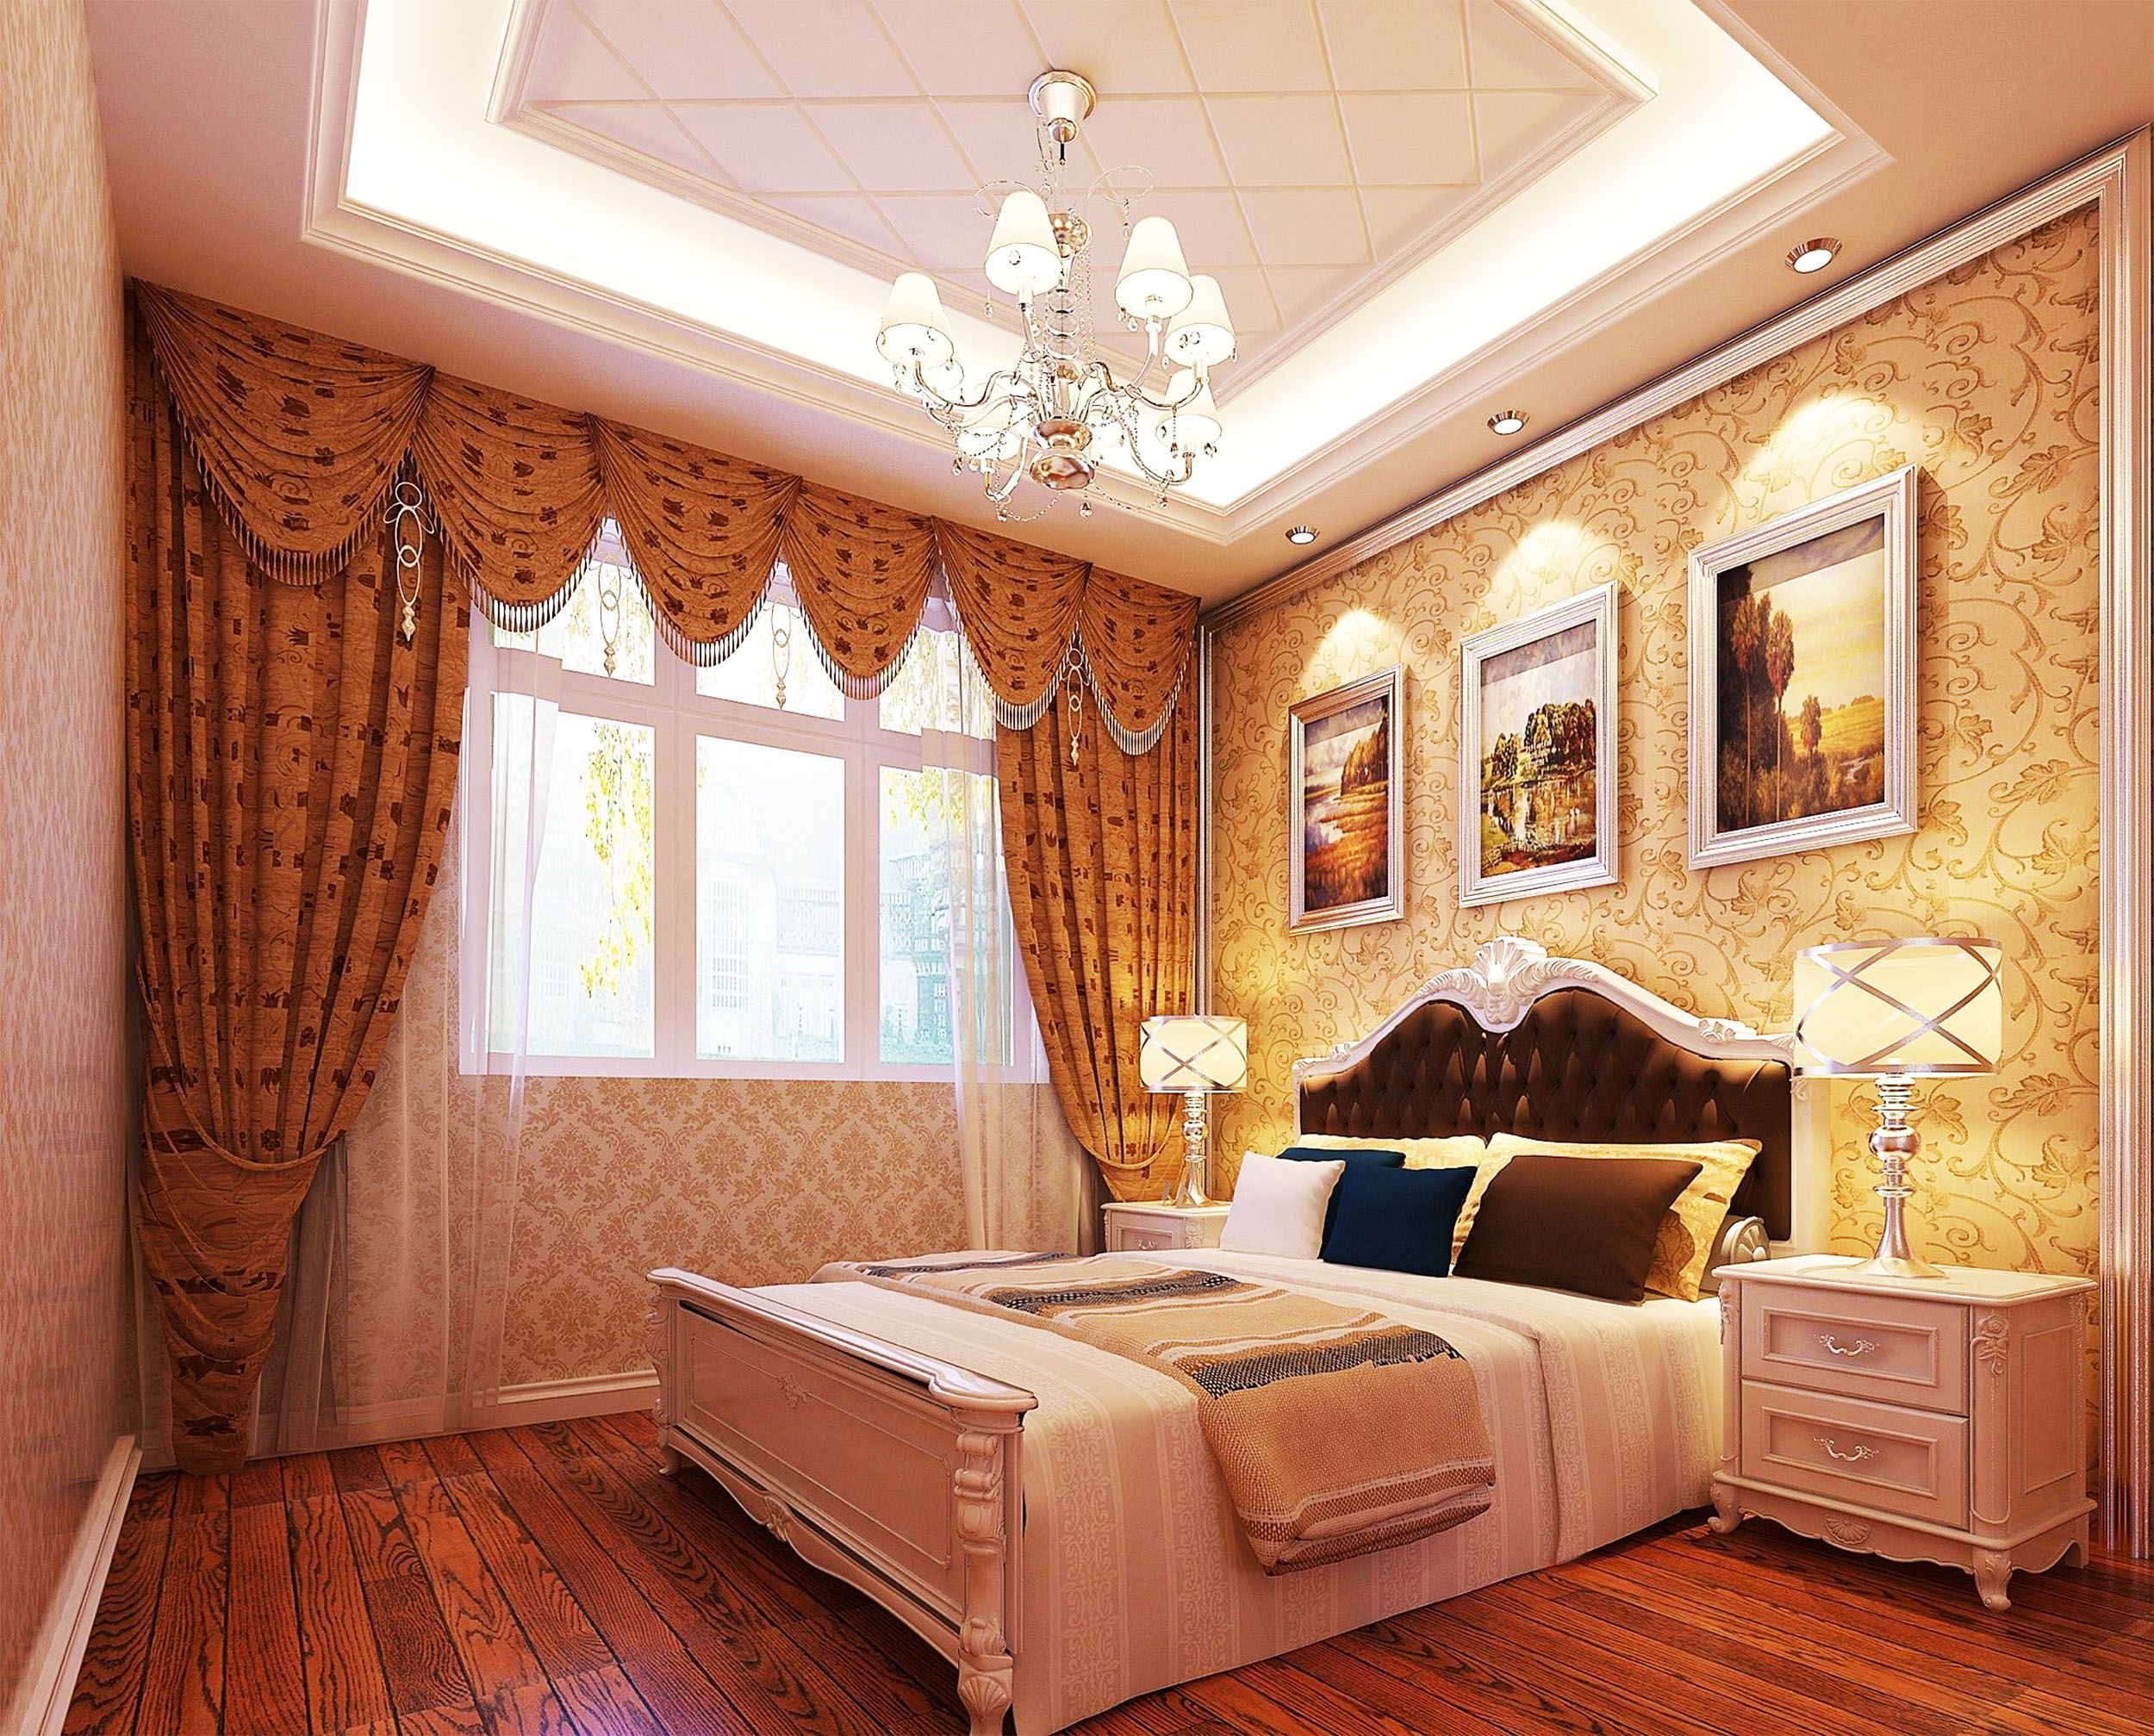 The bedroom curtain design must be perfect to make the room appear